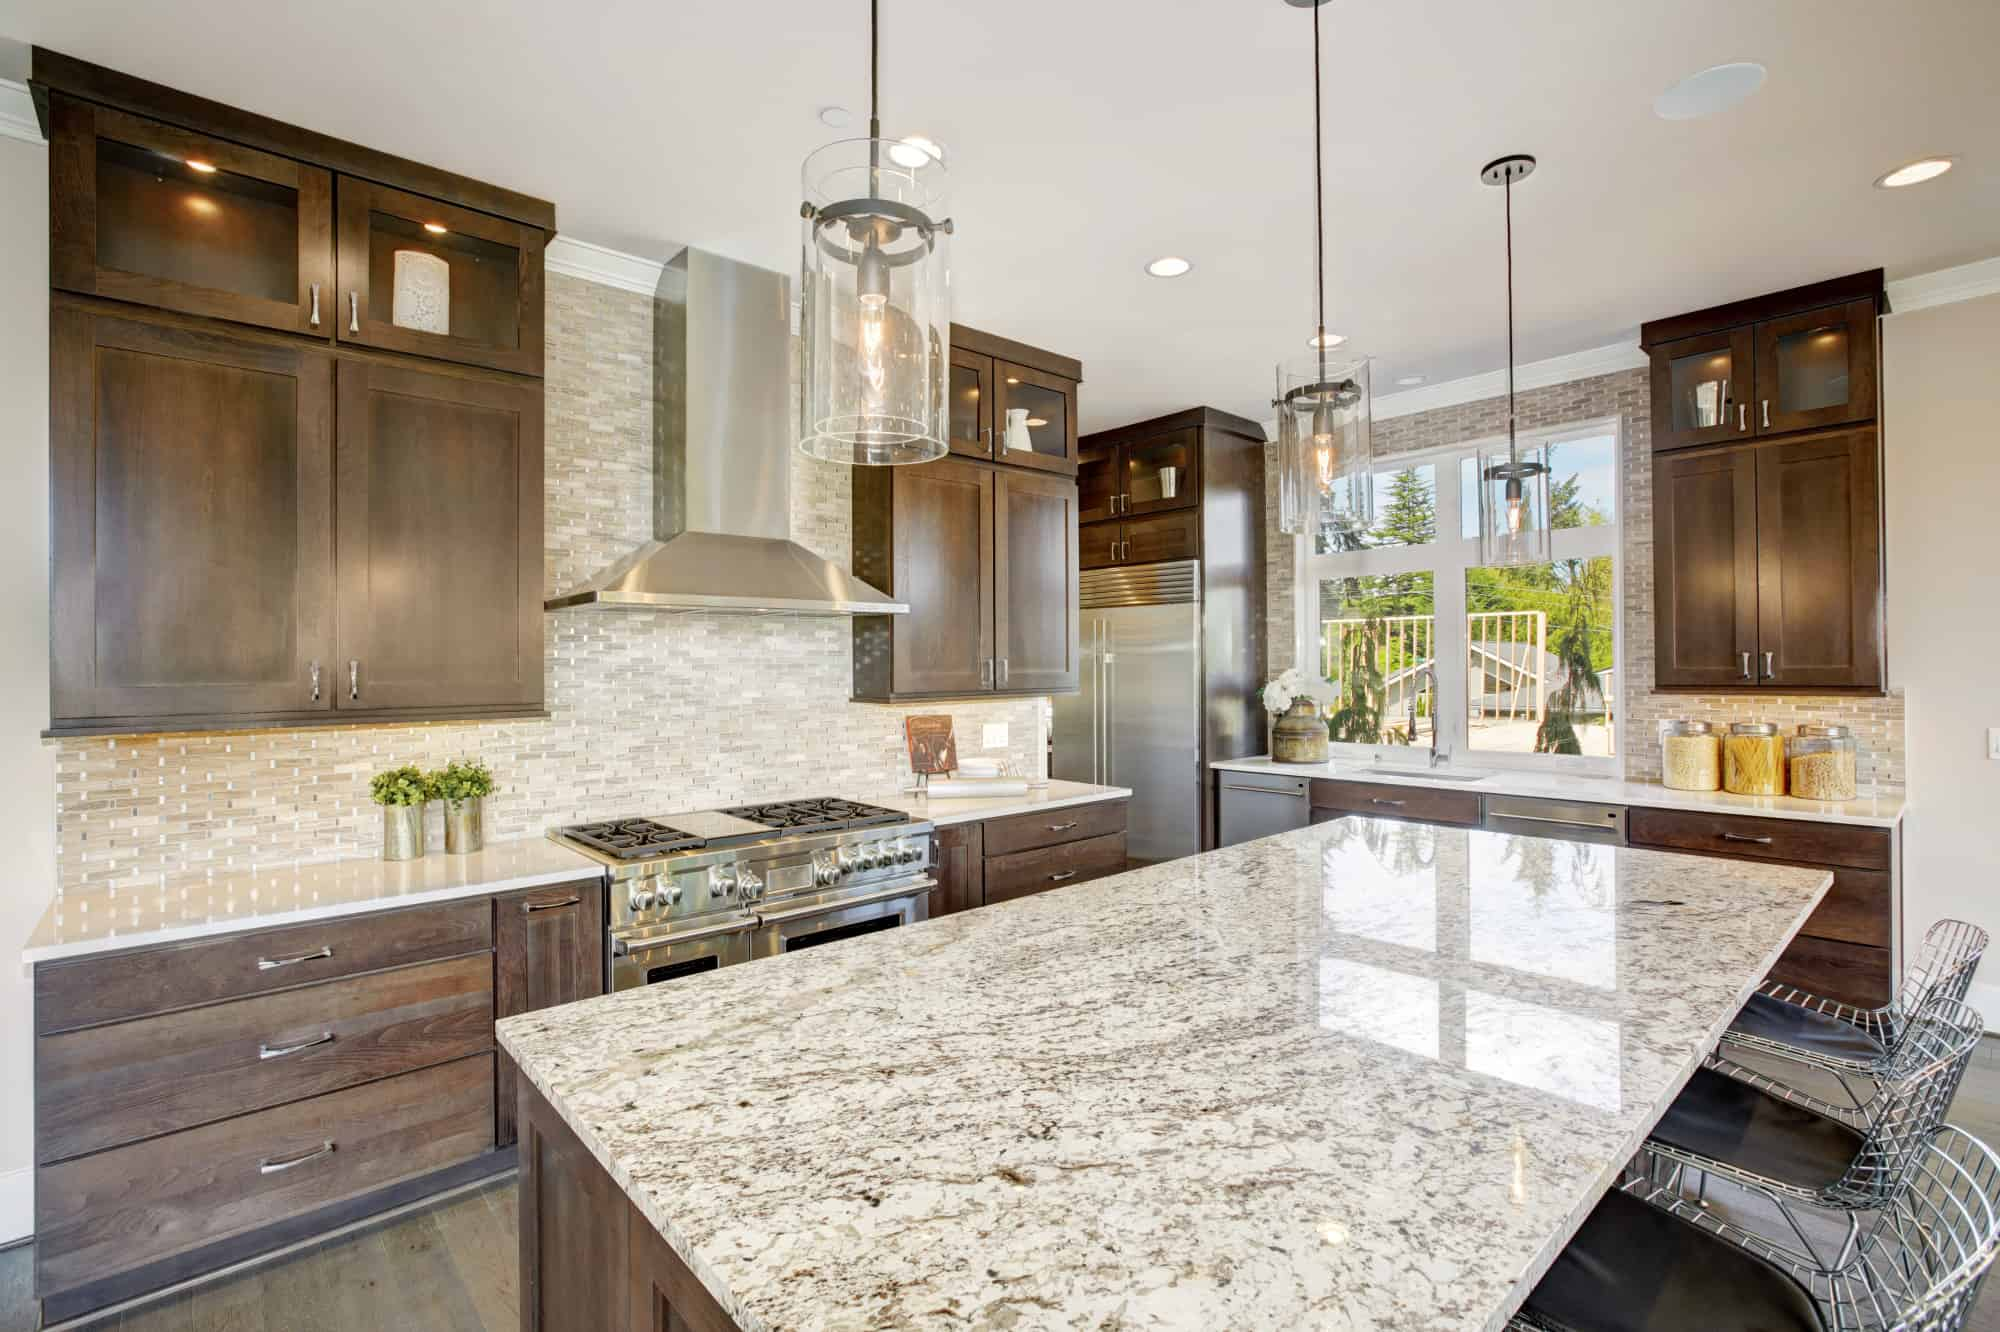 Refresh Your Style With Renovation Types Of Kitchen Countertops